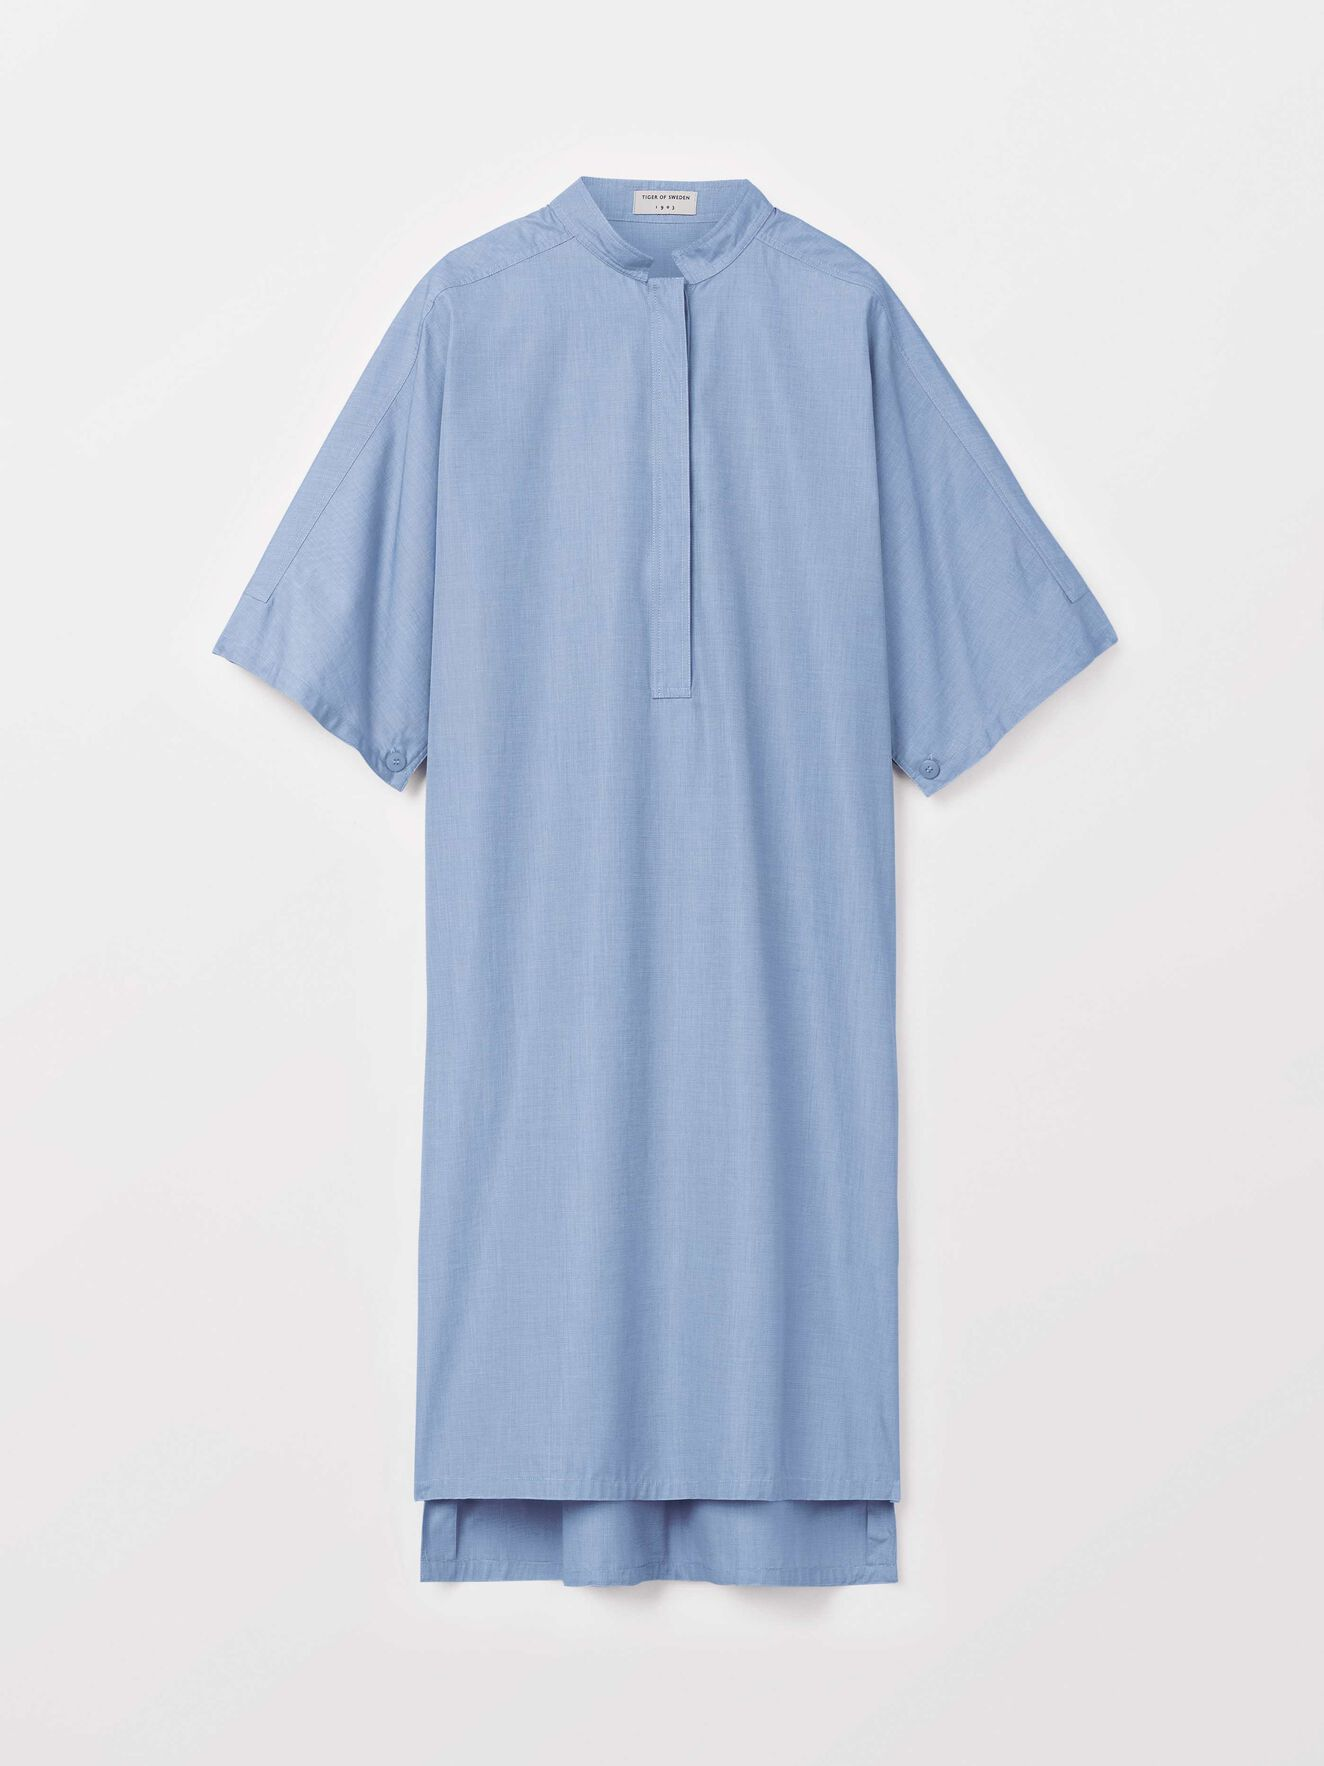 Ekasi Dress in Airy Blue from Tiger of Sweden